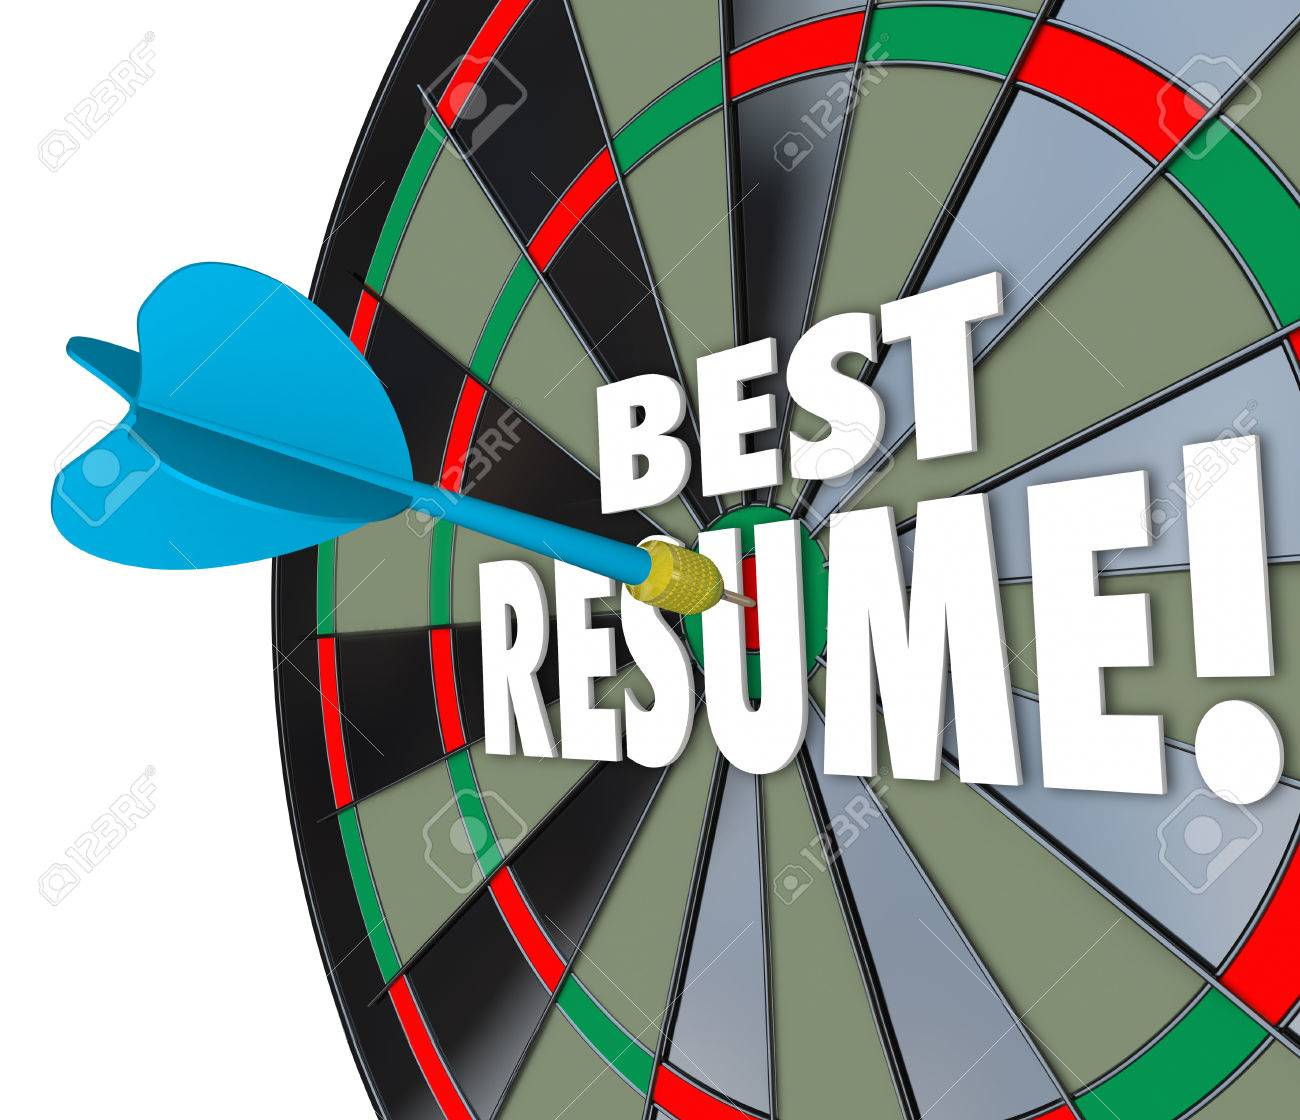 best resume d words on a dart board to illustrate your skills best resume 3d words on a dart board to illustrate your skills experience references